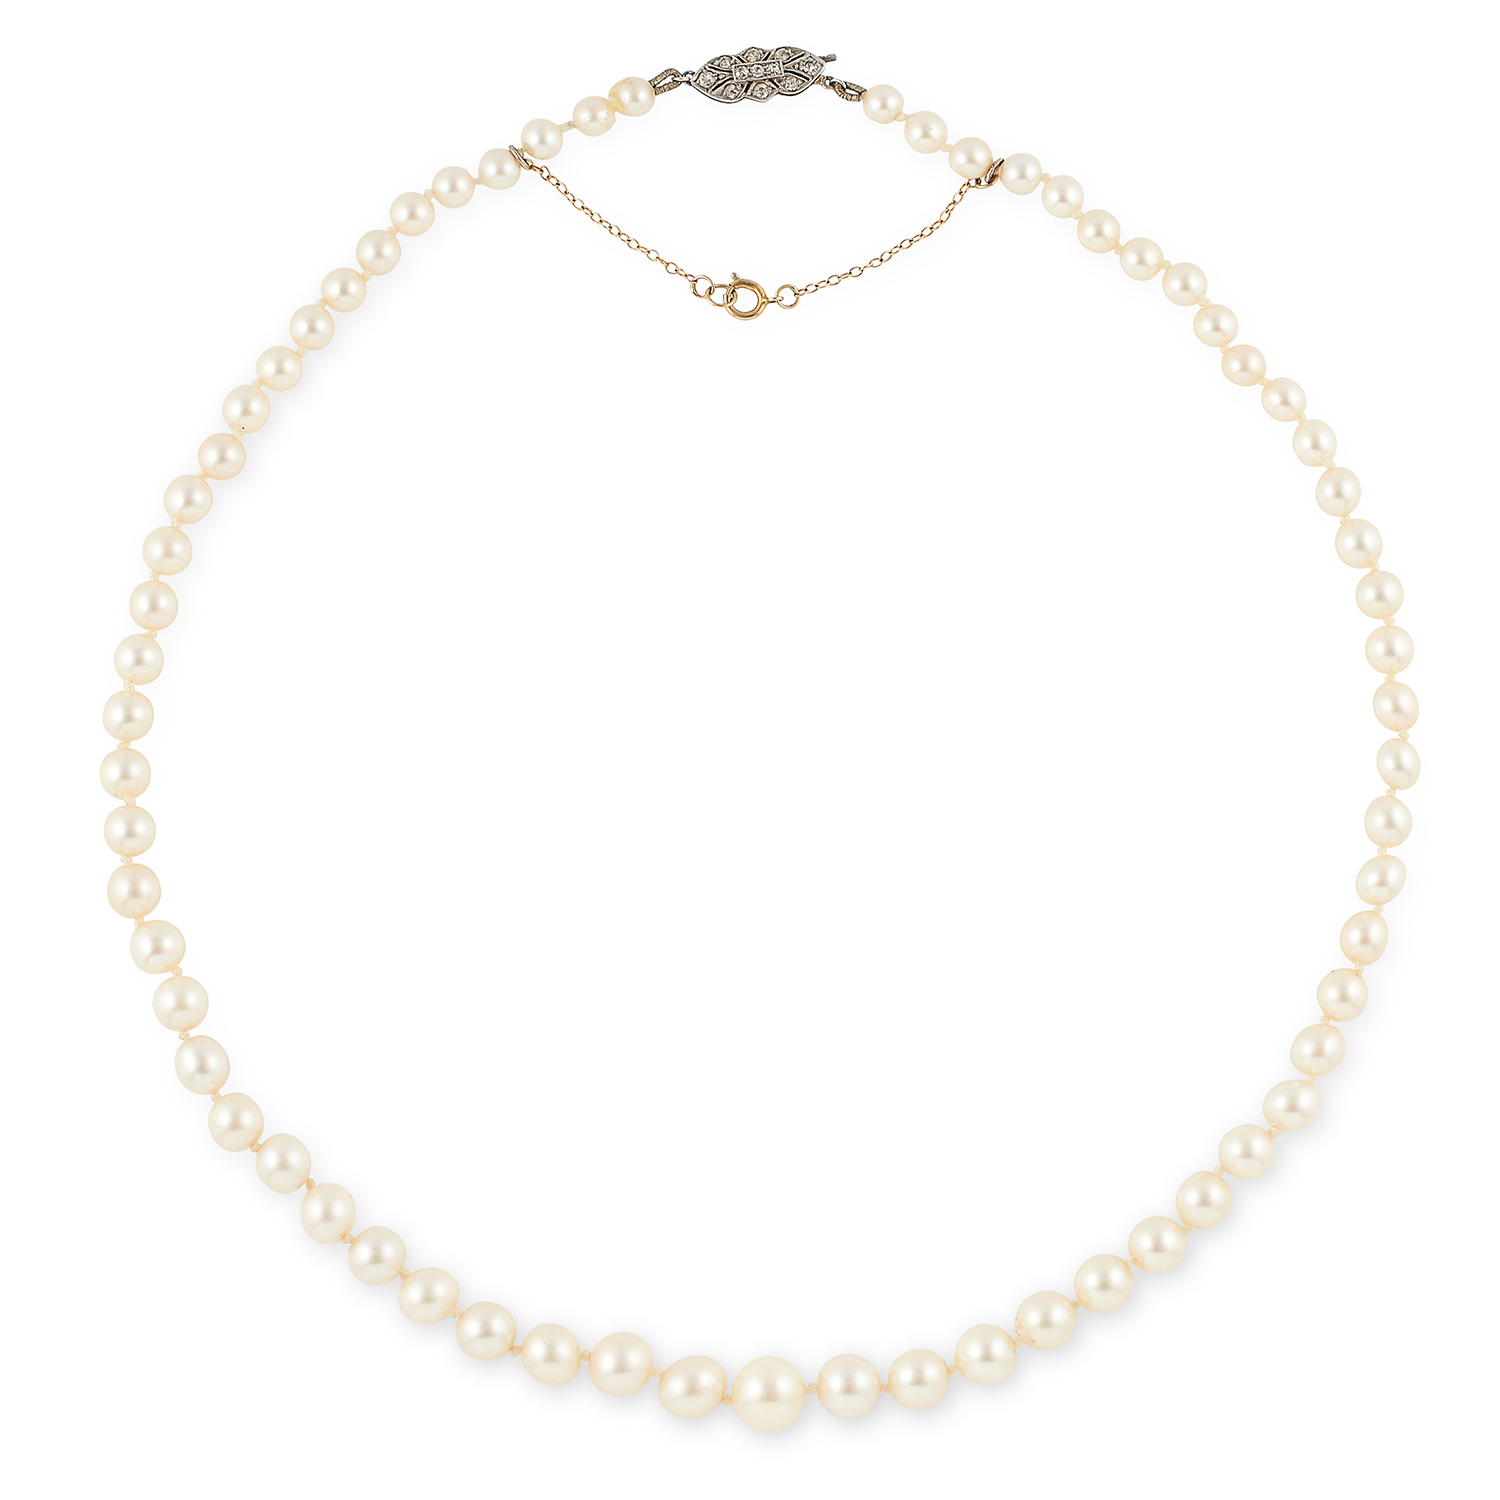 Los 30 - PEARL BEAD NECKLACE comprising of a single row of pearls with diamond set clasp, 48cm, 21.8g.